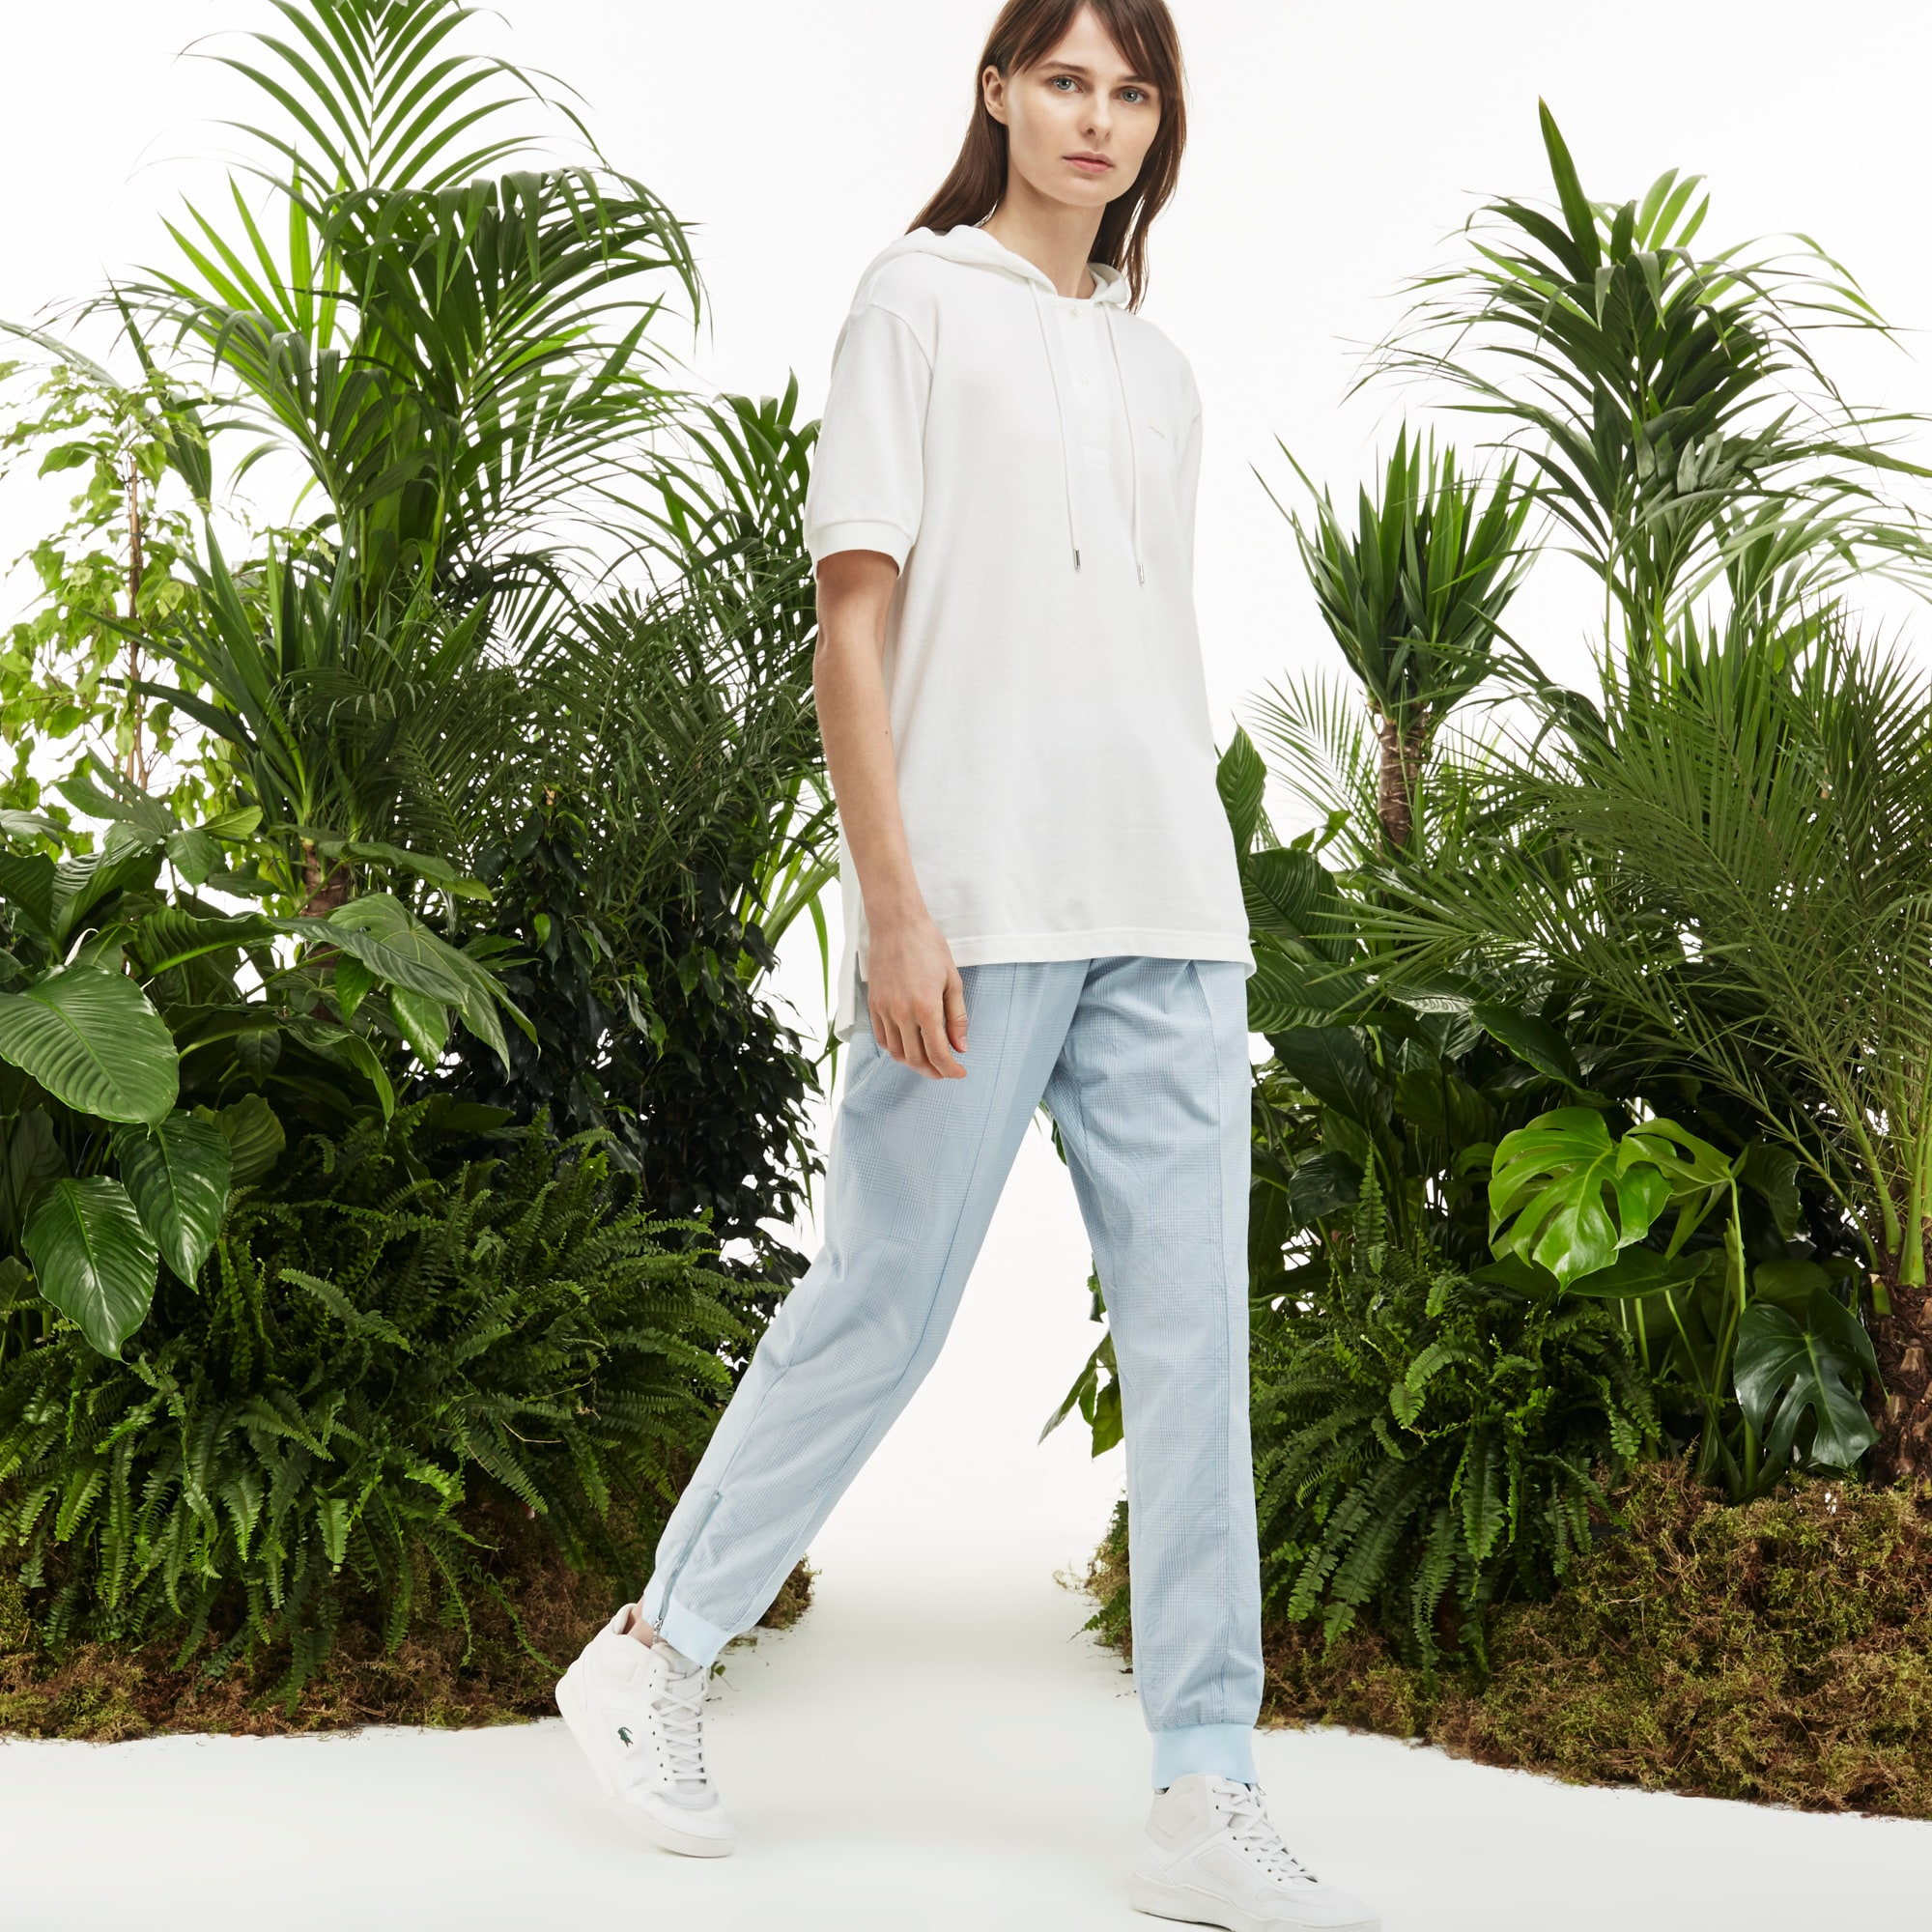 Women's Fashion Show Urban Seersucker Trackpants